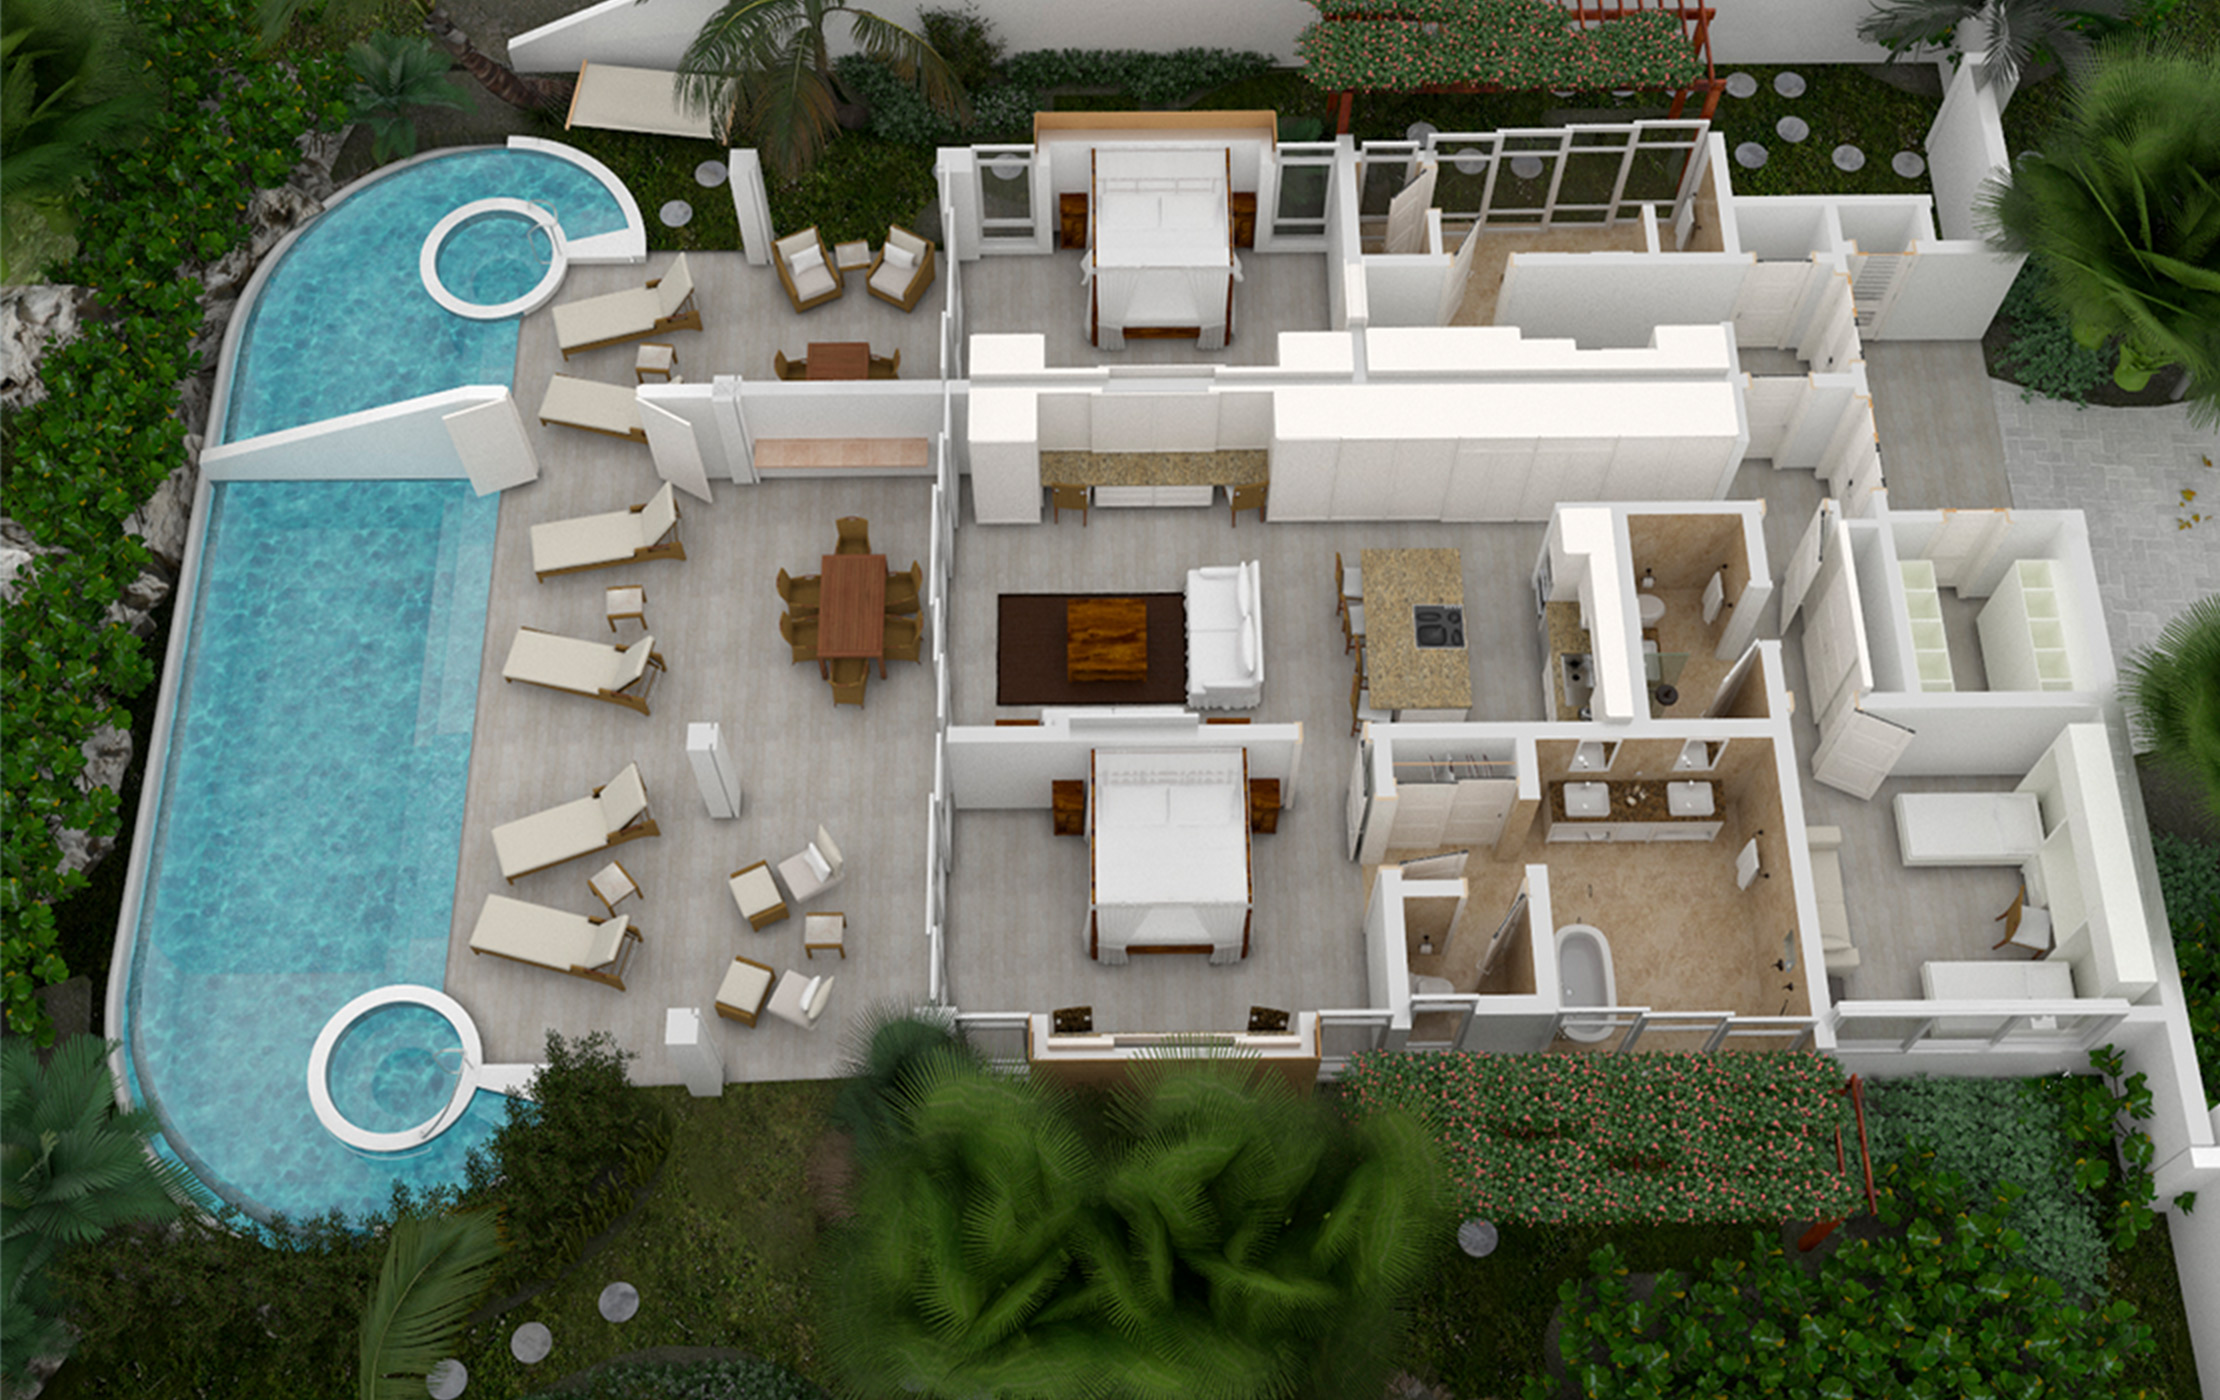 3-Bedroom Villa with Lock-off